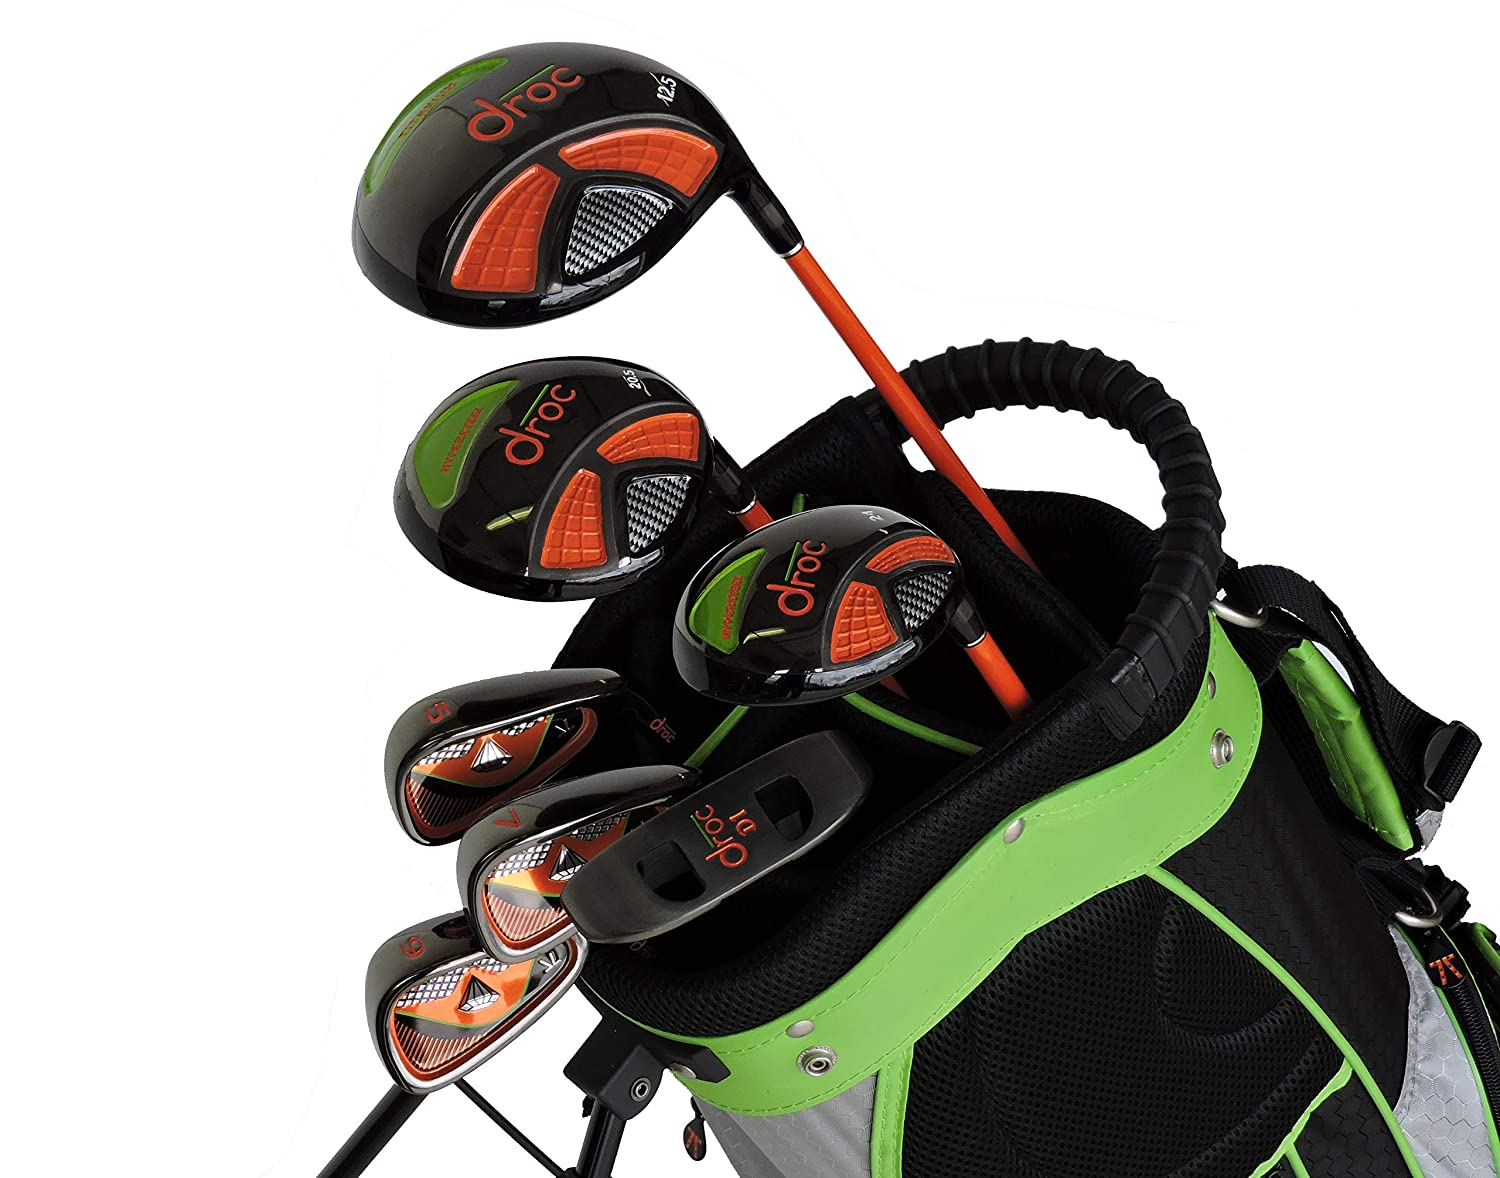 Droc - Noa Series Right Hand 7 Pieces Golf Clubs Set and Golf Bag Age 6-10 Right Handed